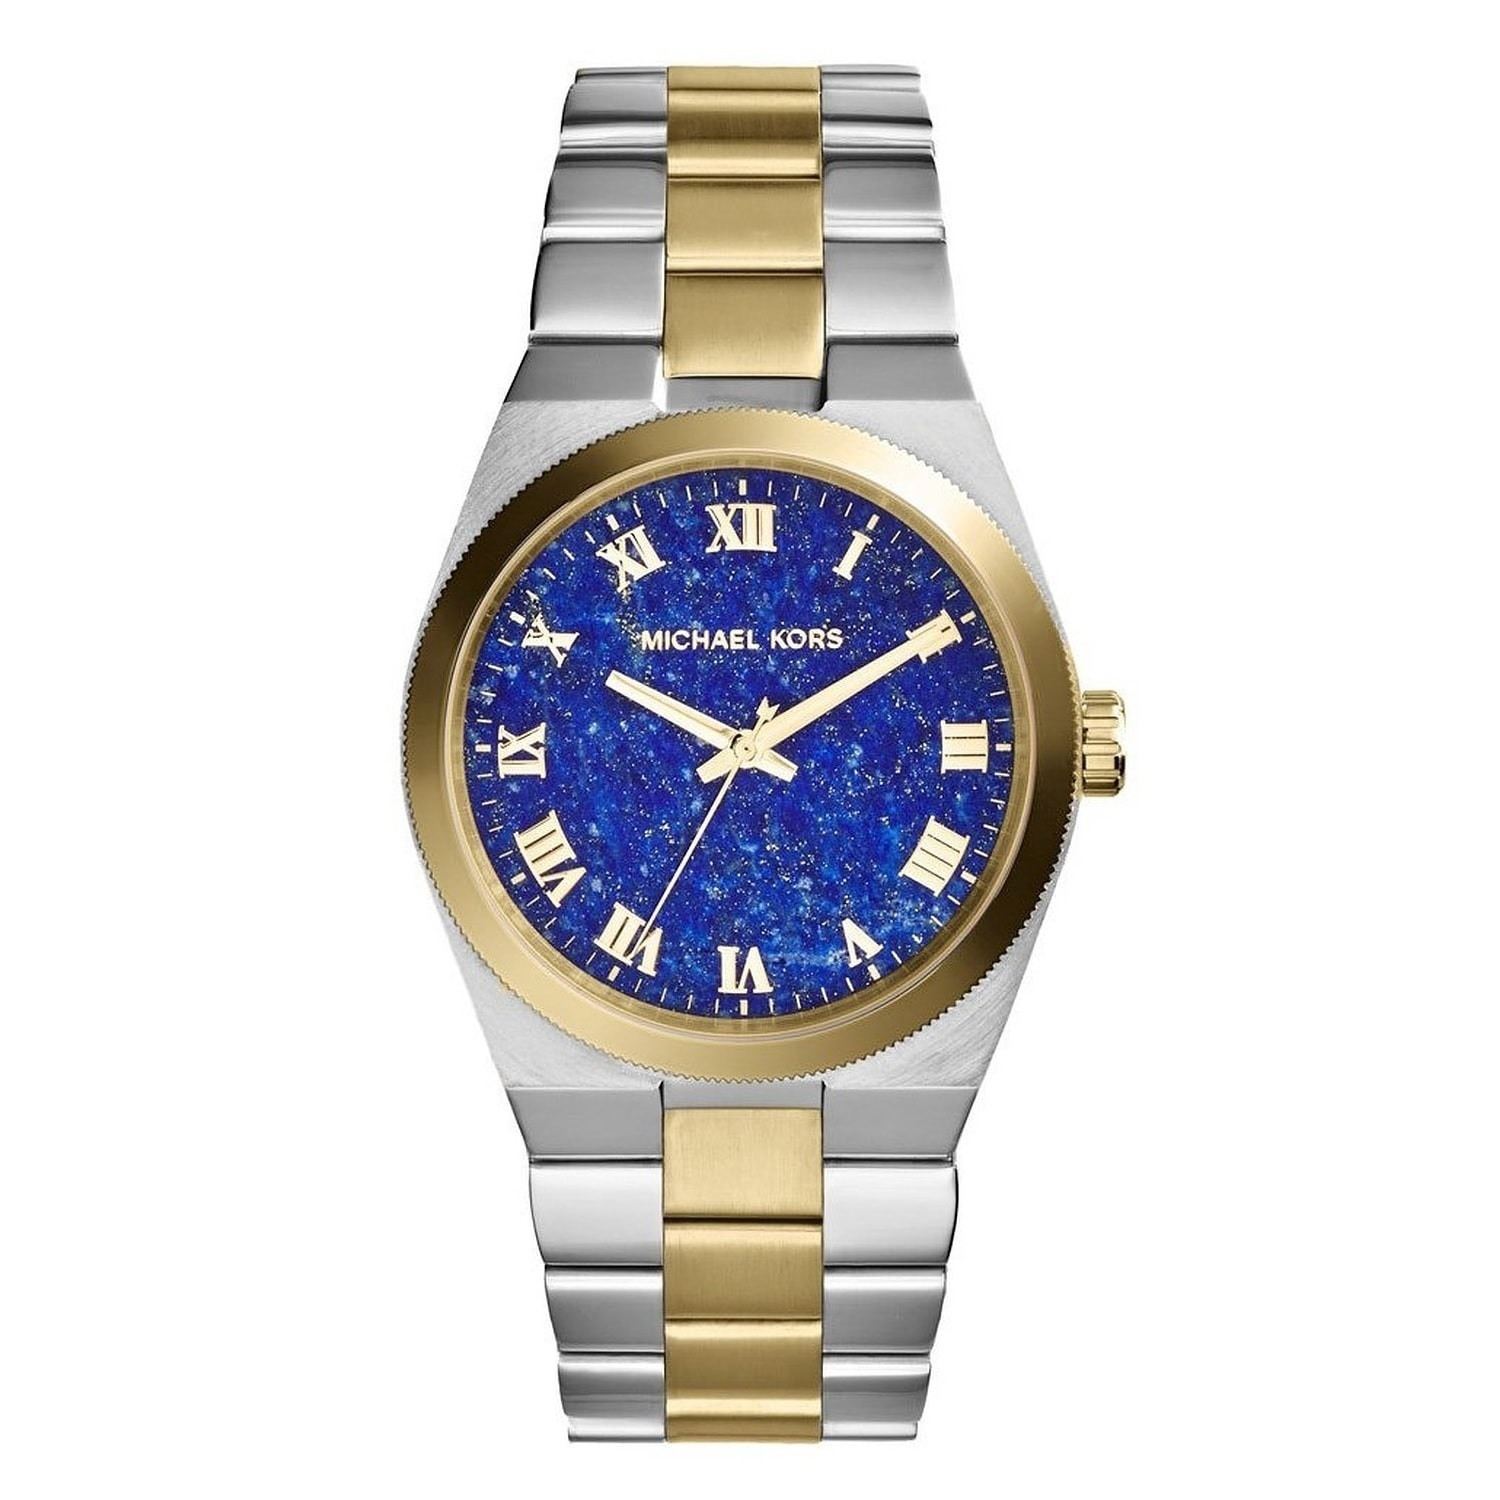 9e9815256735 Shop Michael Kors Women s MK5893  Channing  Two-tone Blue Dial Watch - Free  Shipping Today - Overstock - 9573670